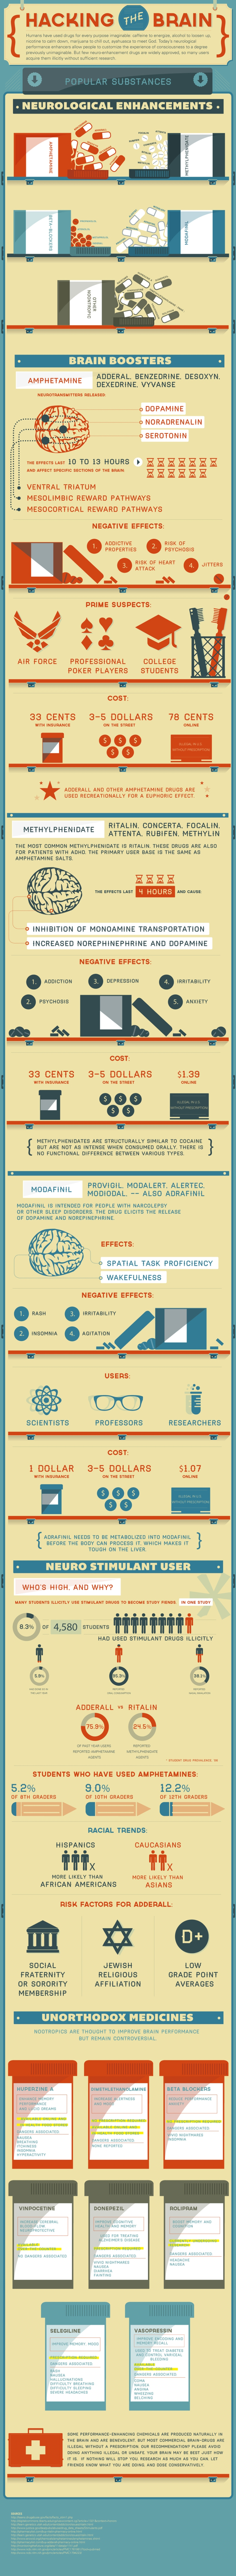 hacking-the-brain Infographic